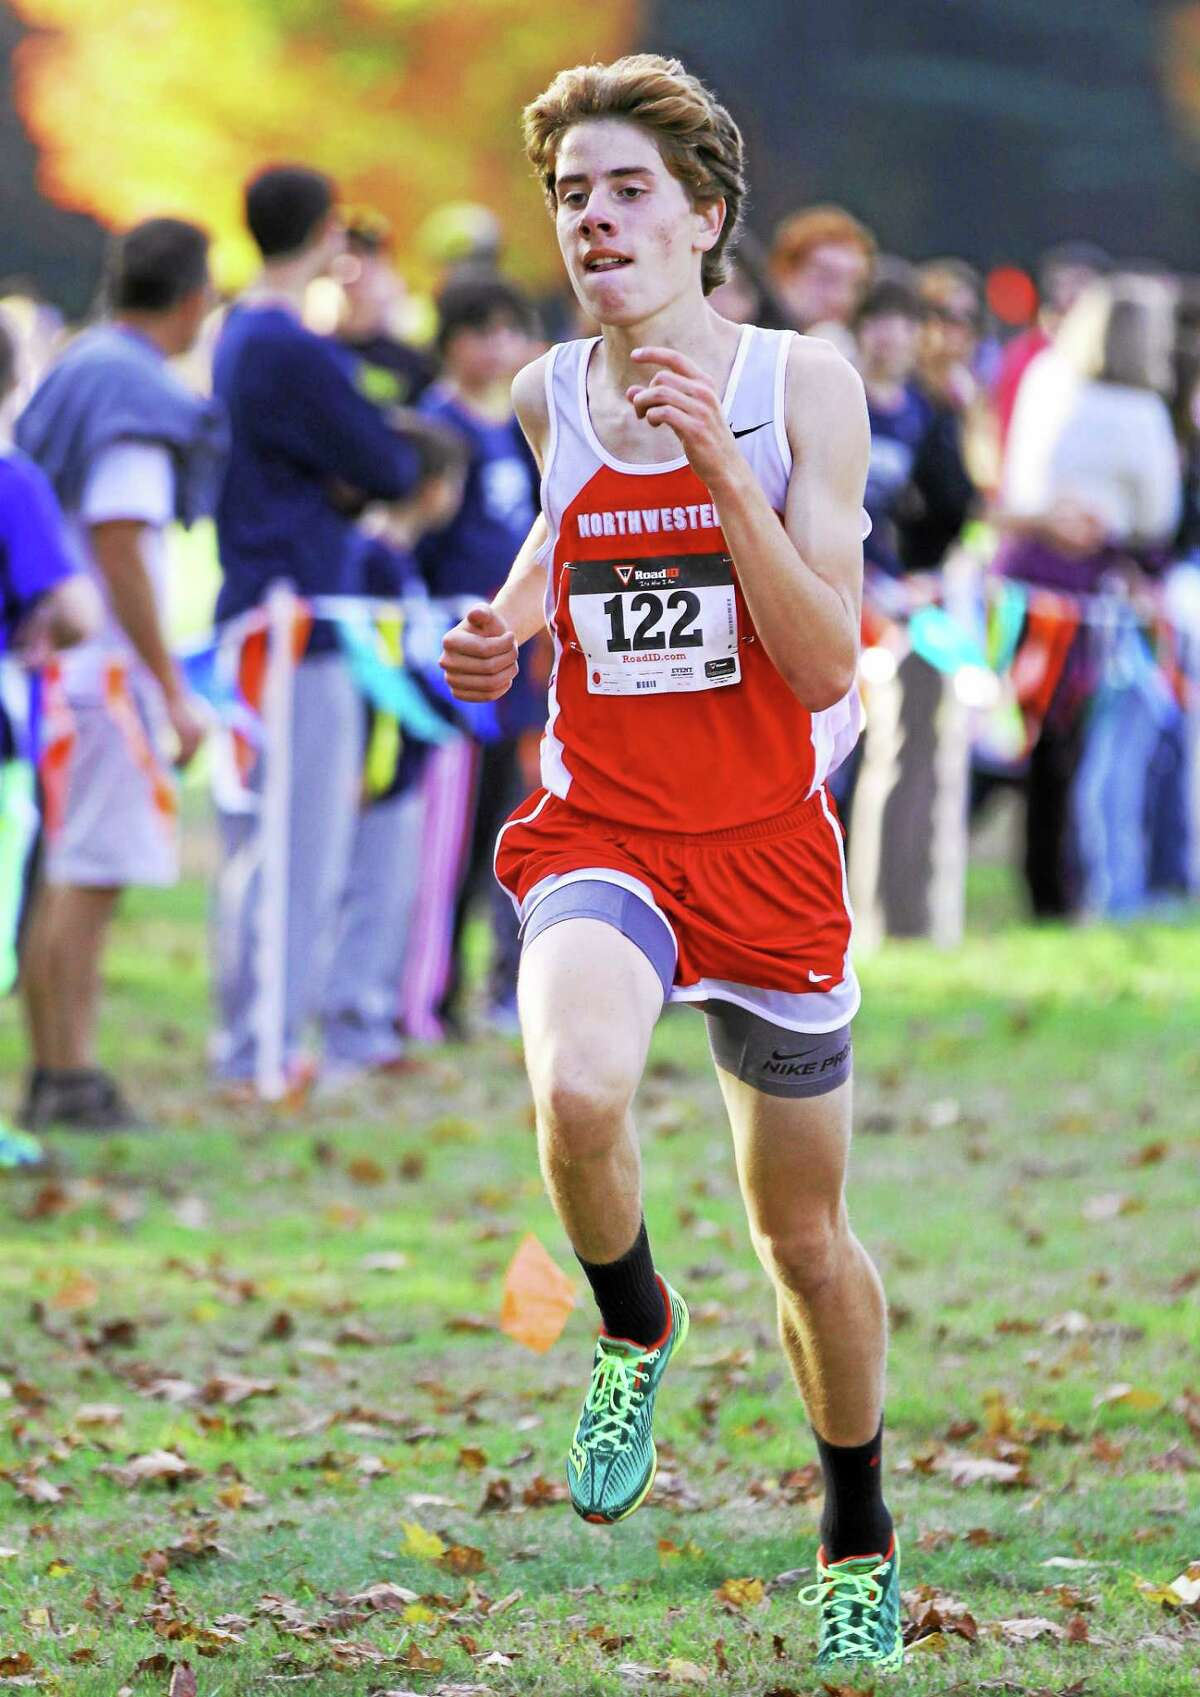 Northwestern's Peter Bakker took home the boys individual title, helping lead the Highlanders to the boys team title.